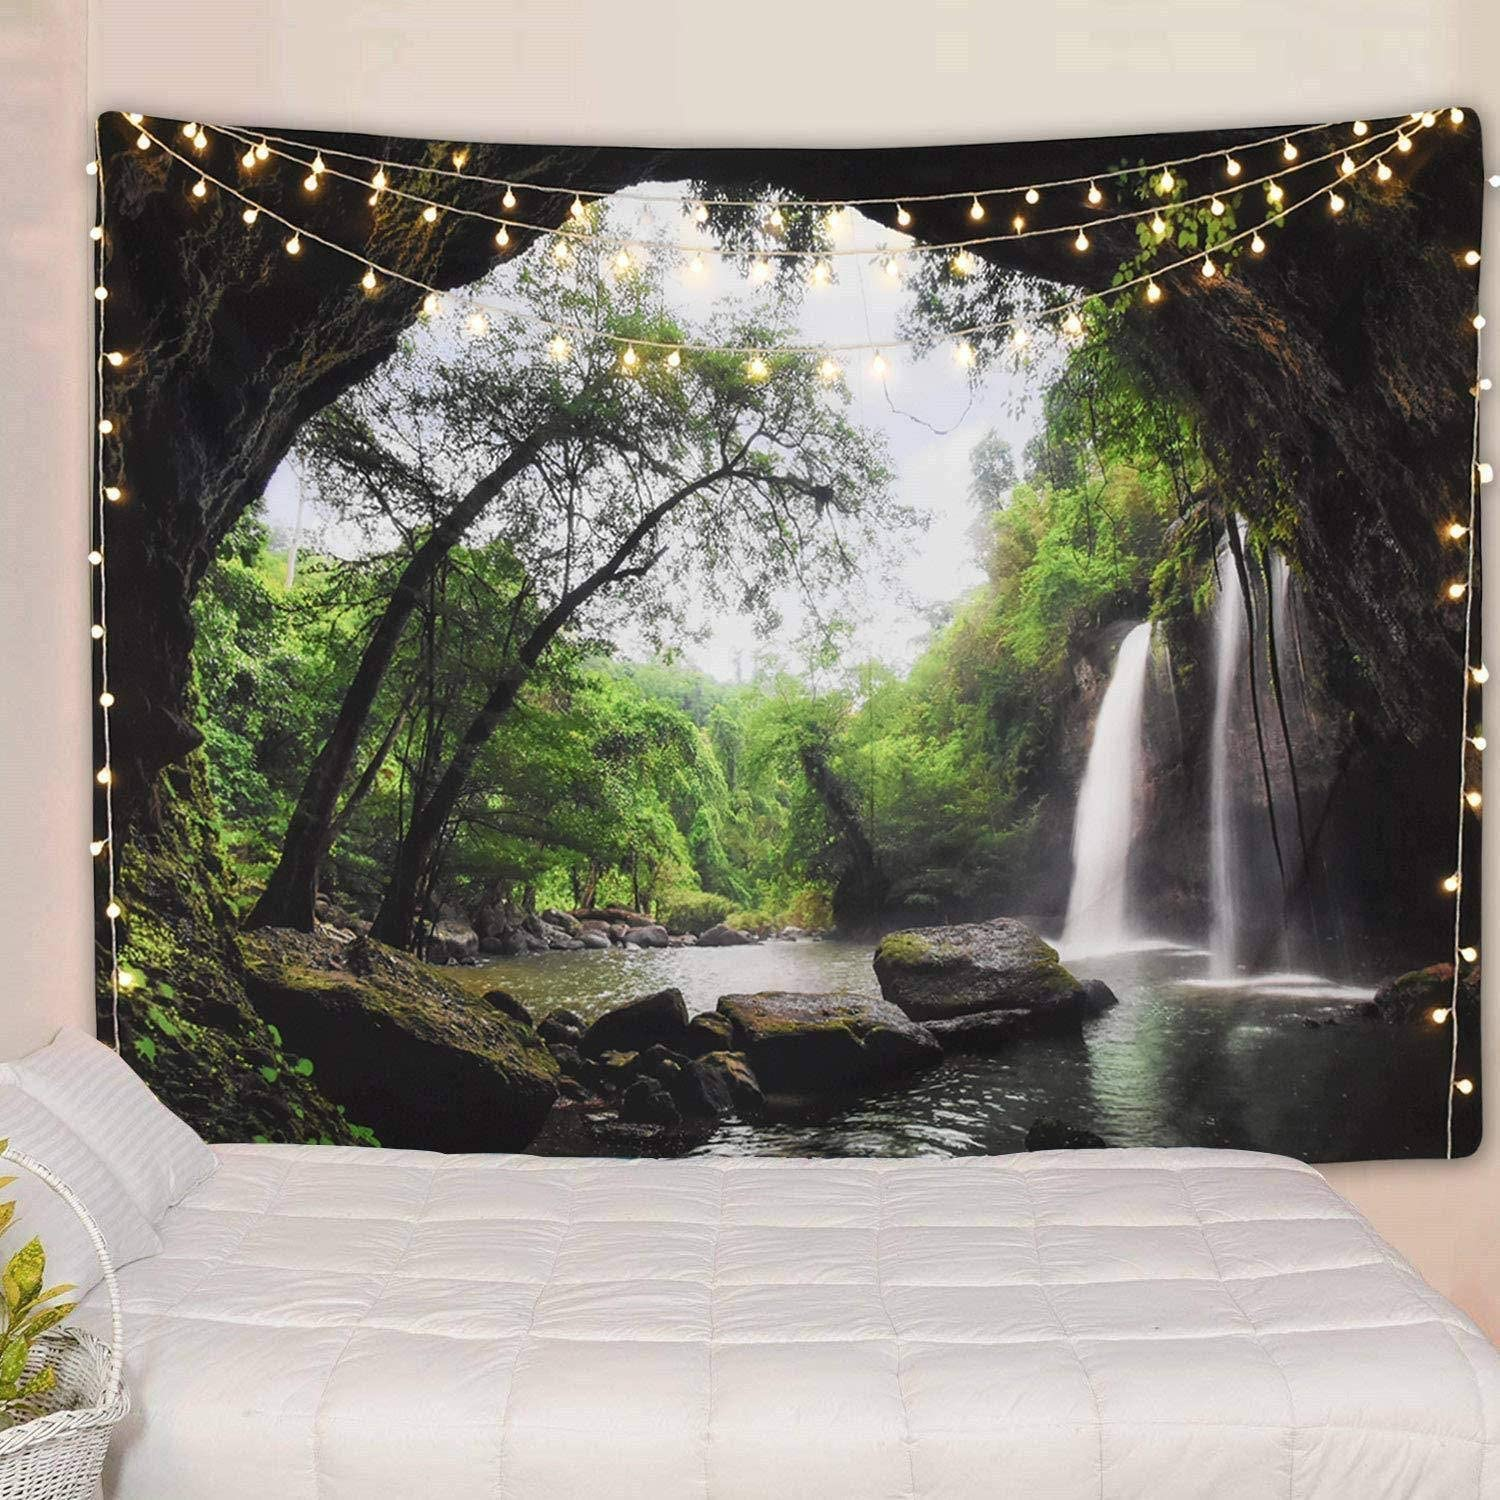 Heart Horse Mountain Cave Tapestry,Forest Tree Waterfall Nature Landscape Green Jungle Tapestries Large Tropical 3D Wall Hanging for Bedroom Living Room Dorm Decor